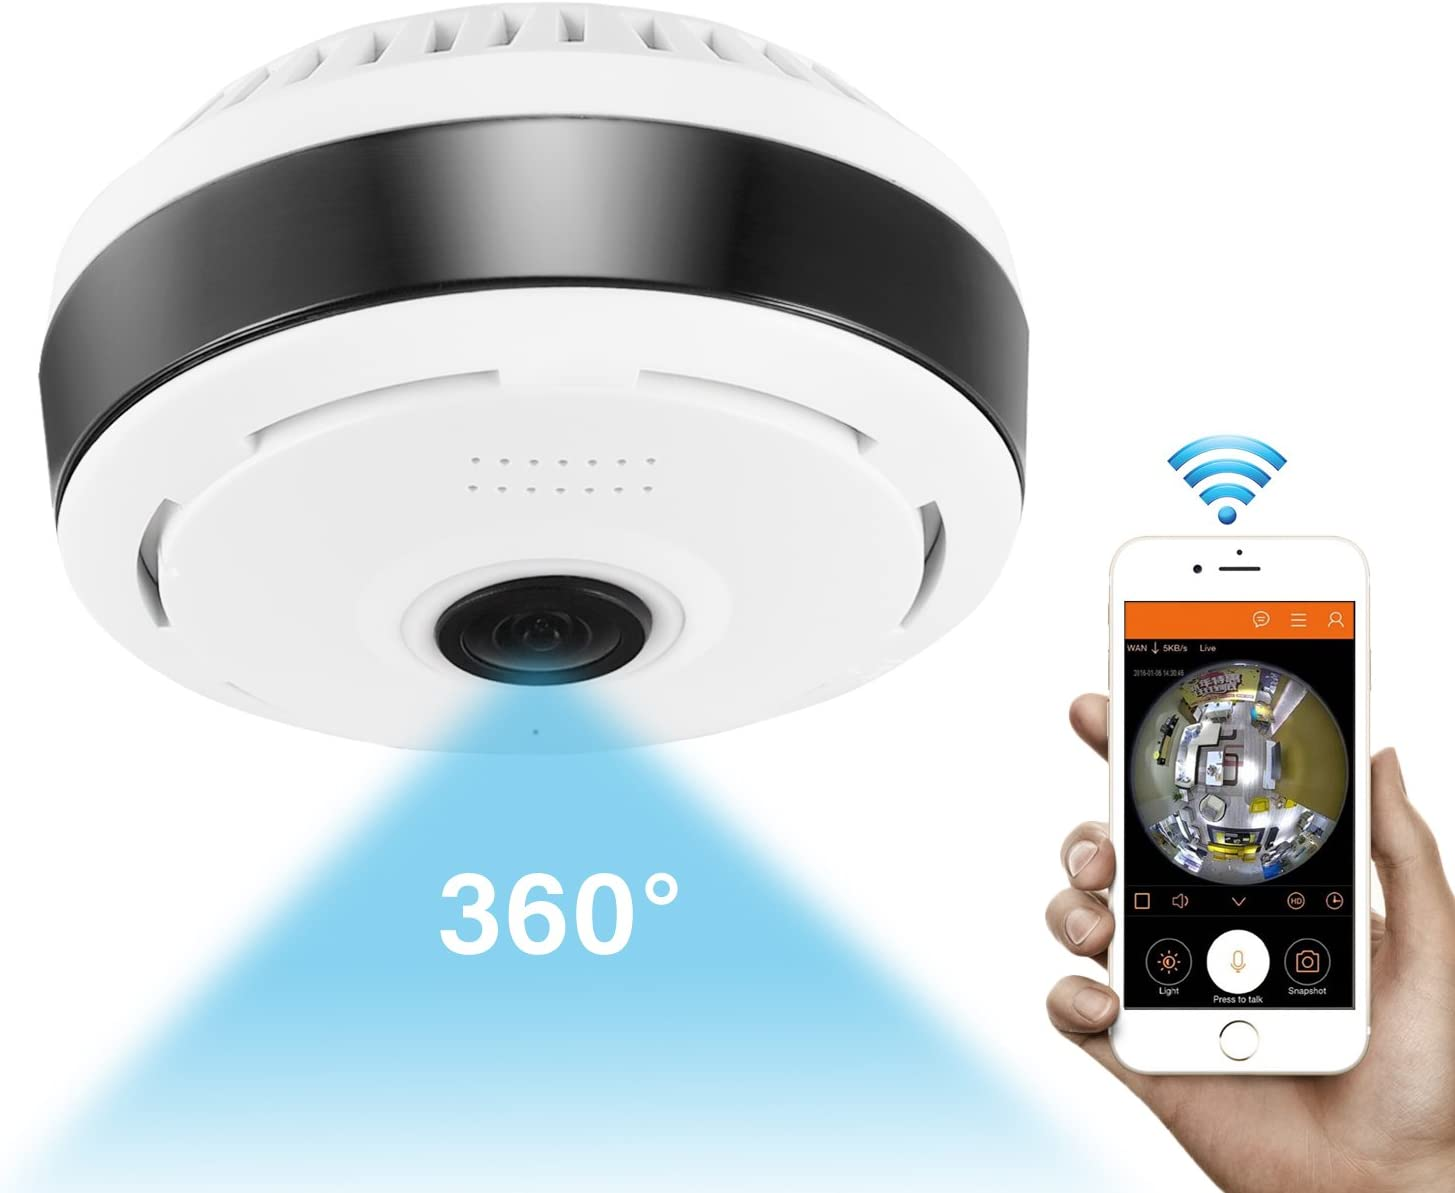 360 Degree Panoramic Camera Wifi Indoor IP Camera Fisheye Baby Monitor with Night Vision 2-way-audio for Kids Pets Home Security Camera System with iOS/Android App for Large Area Monitoring